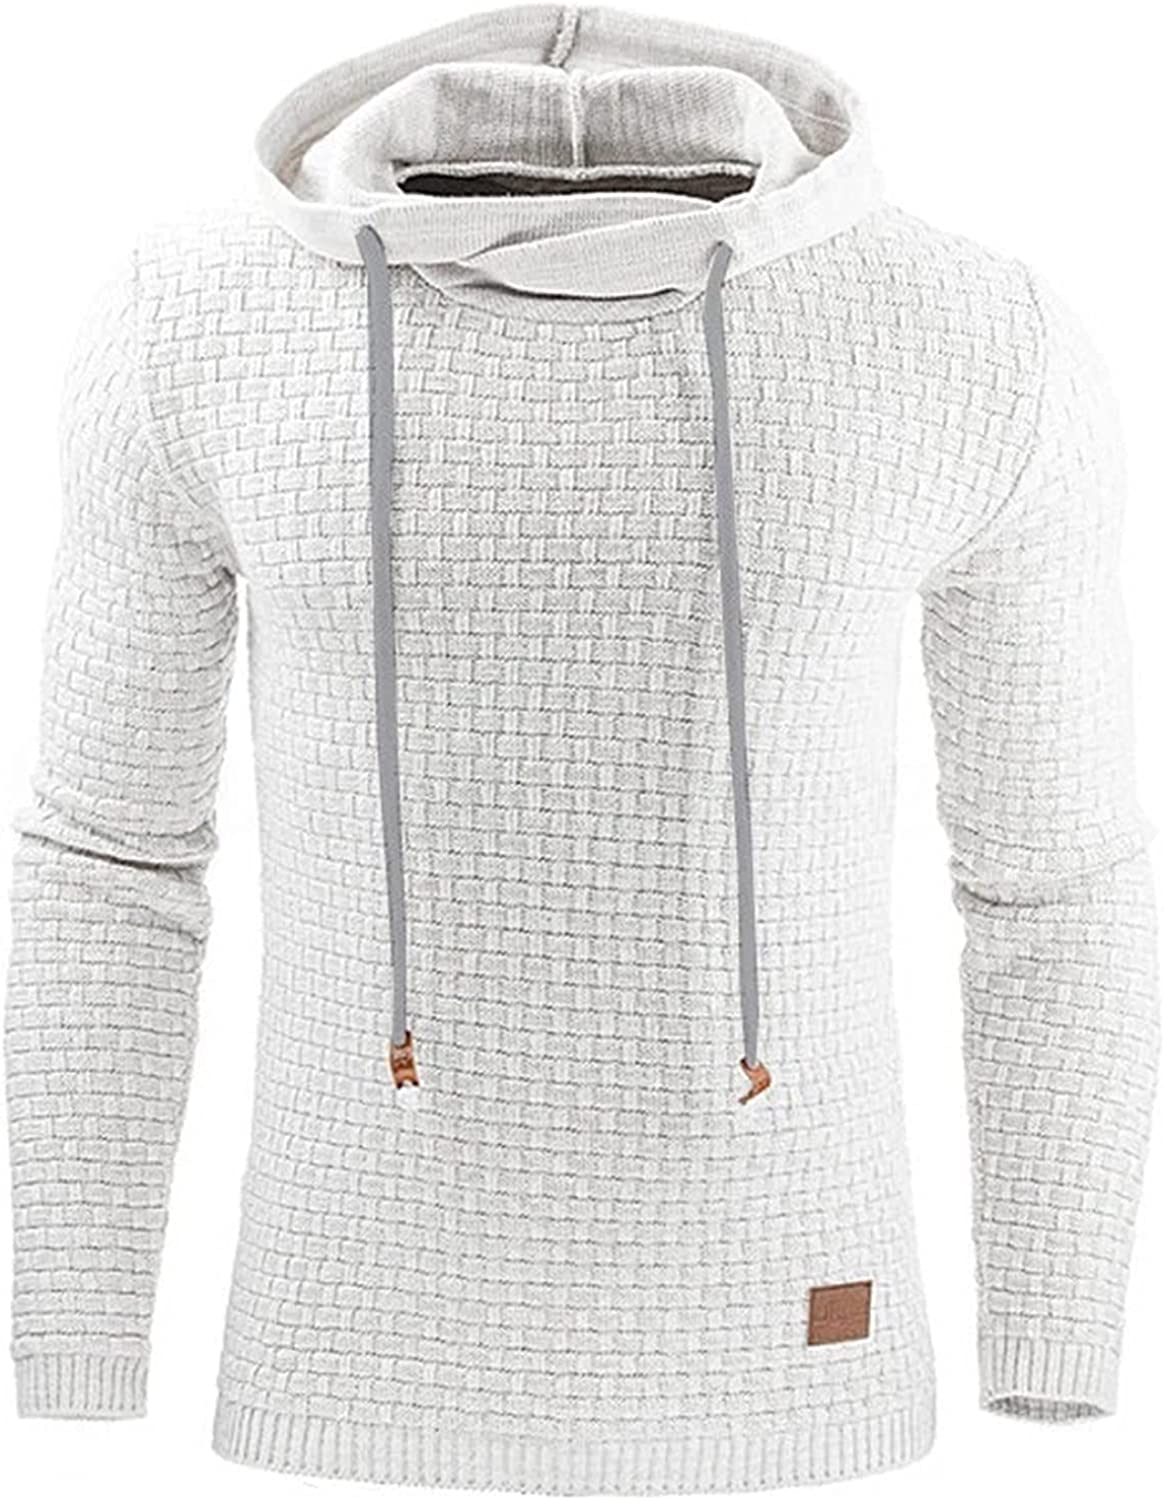 Chunky Waffle Knit Sweater Hoodies Mens Long Sleeve Cotton Hooded Sweatshirt Hipster Gym Plaid Jacquard Pullover